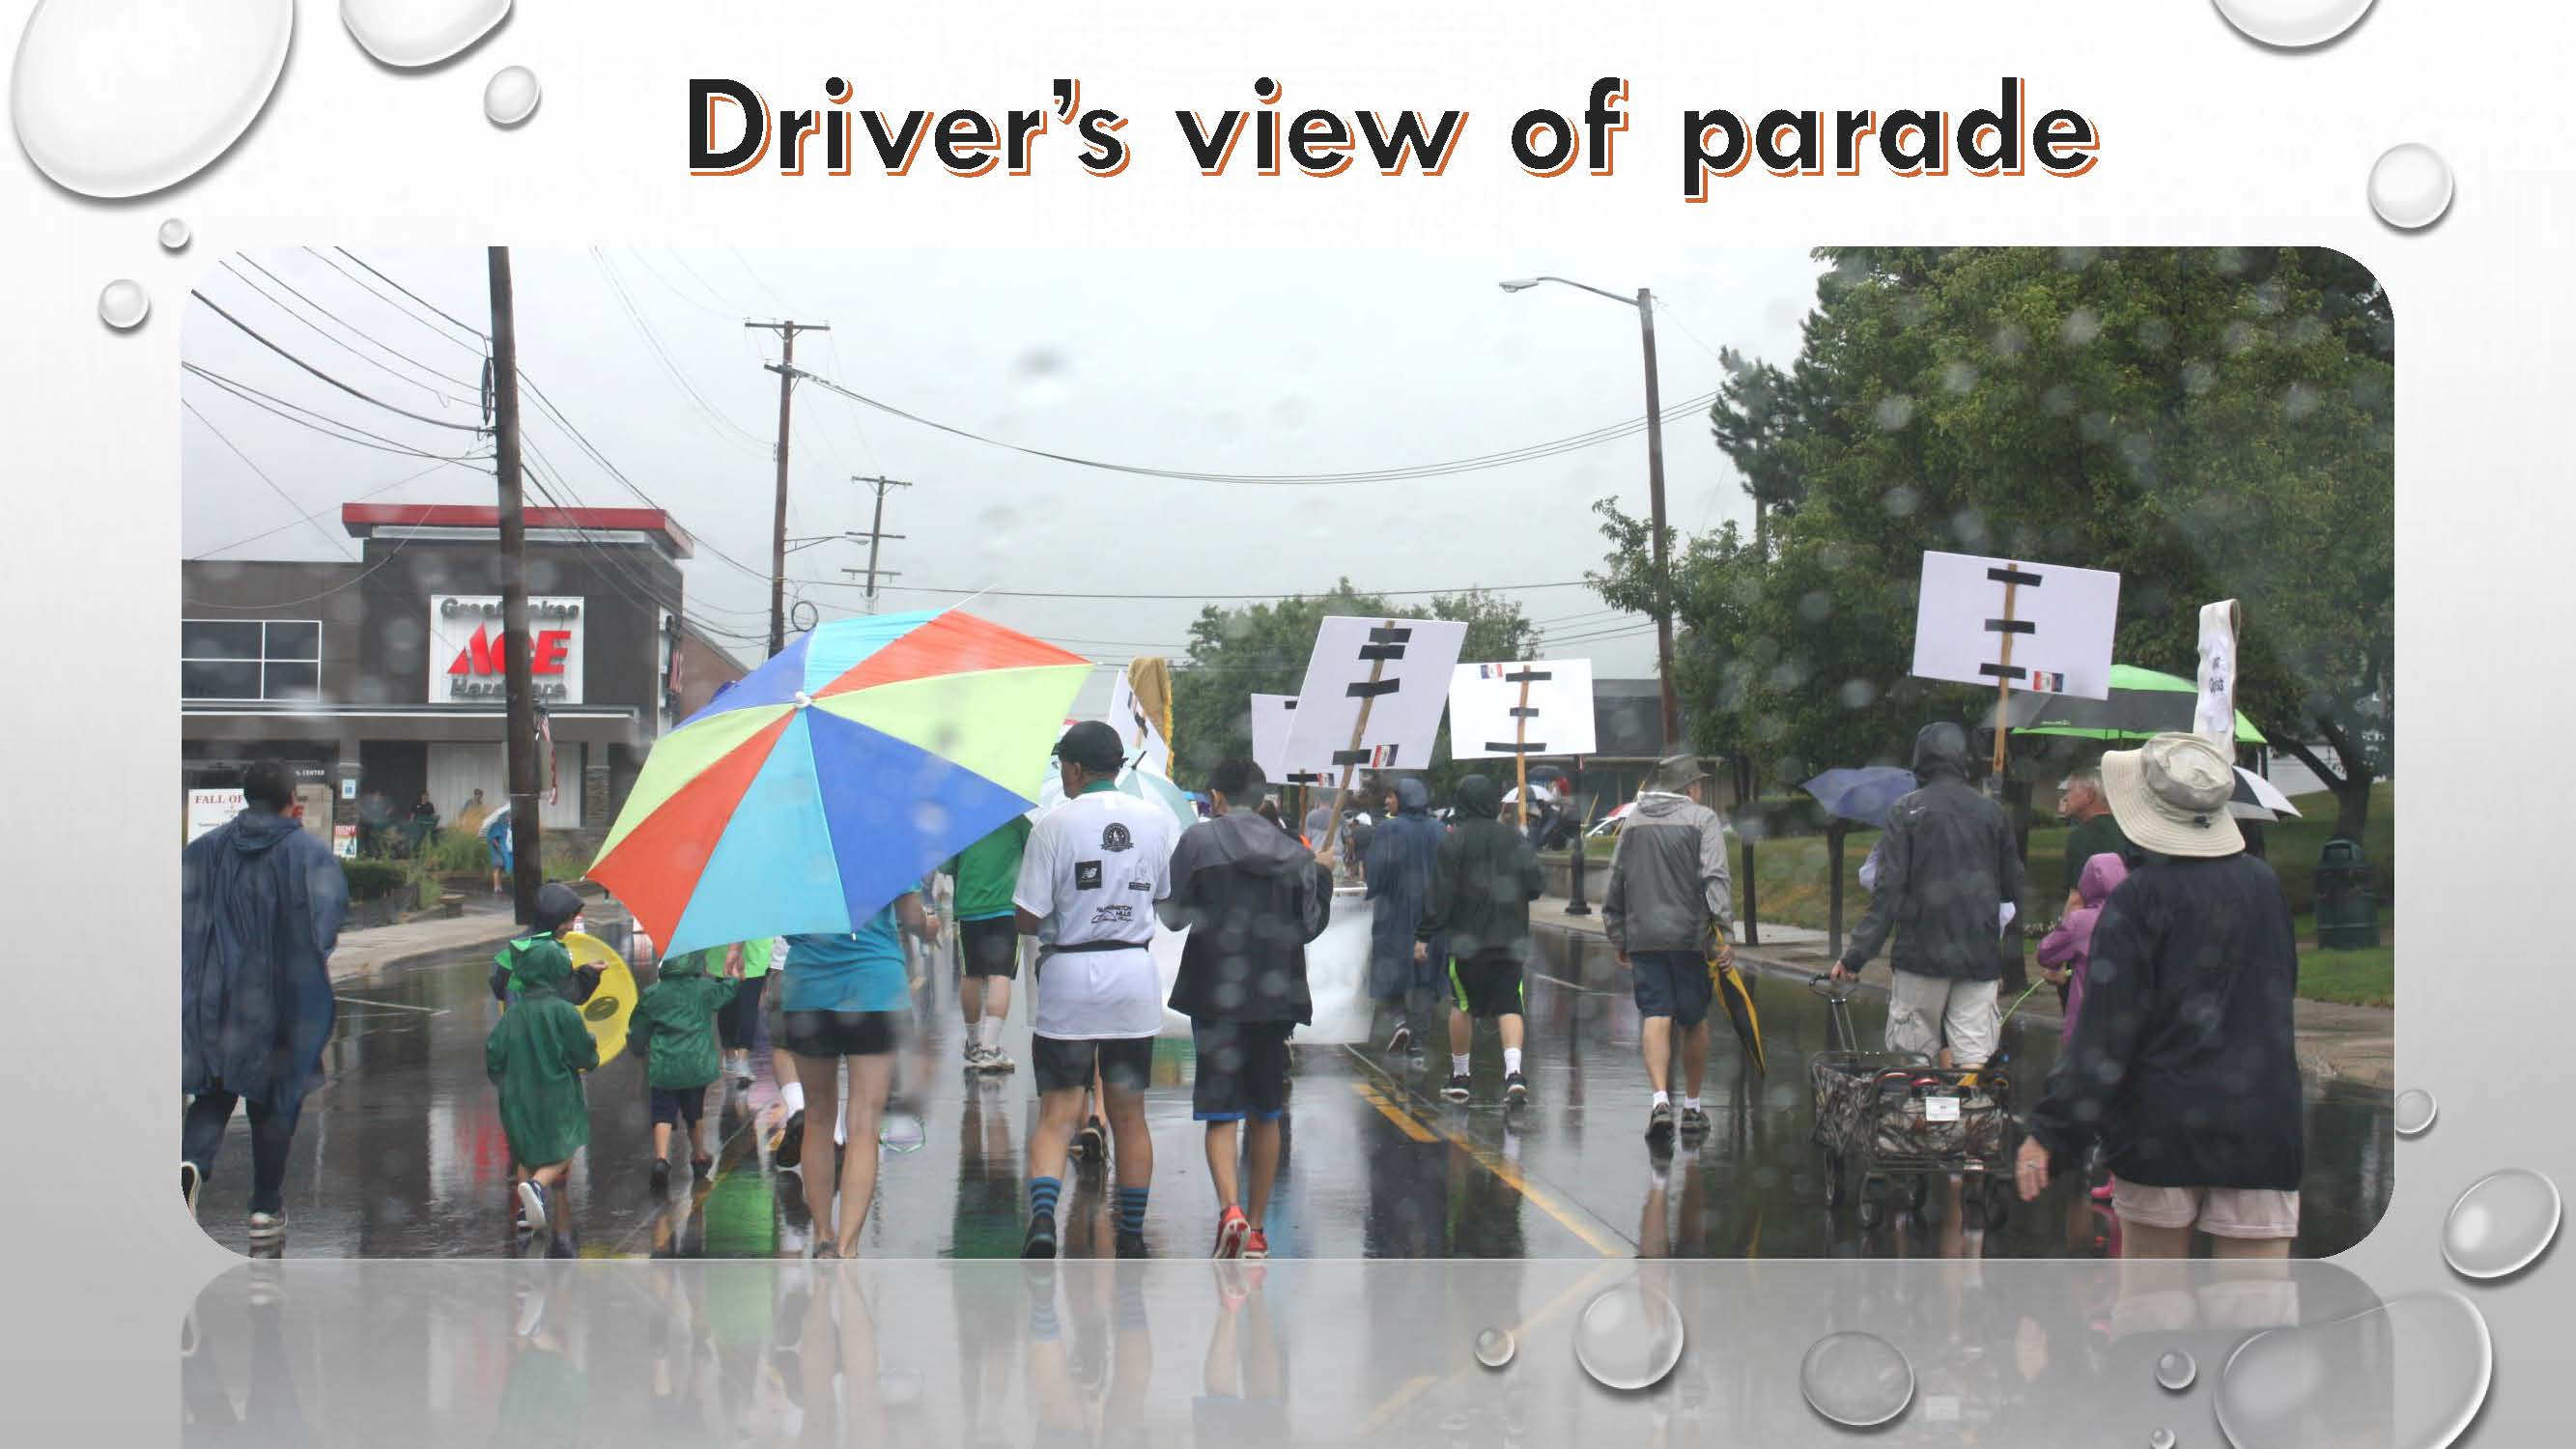 2018 07 21 Founders Parade Pictures Page 6